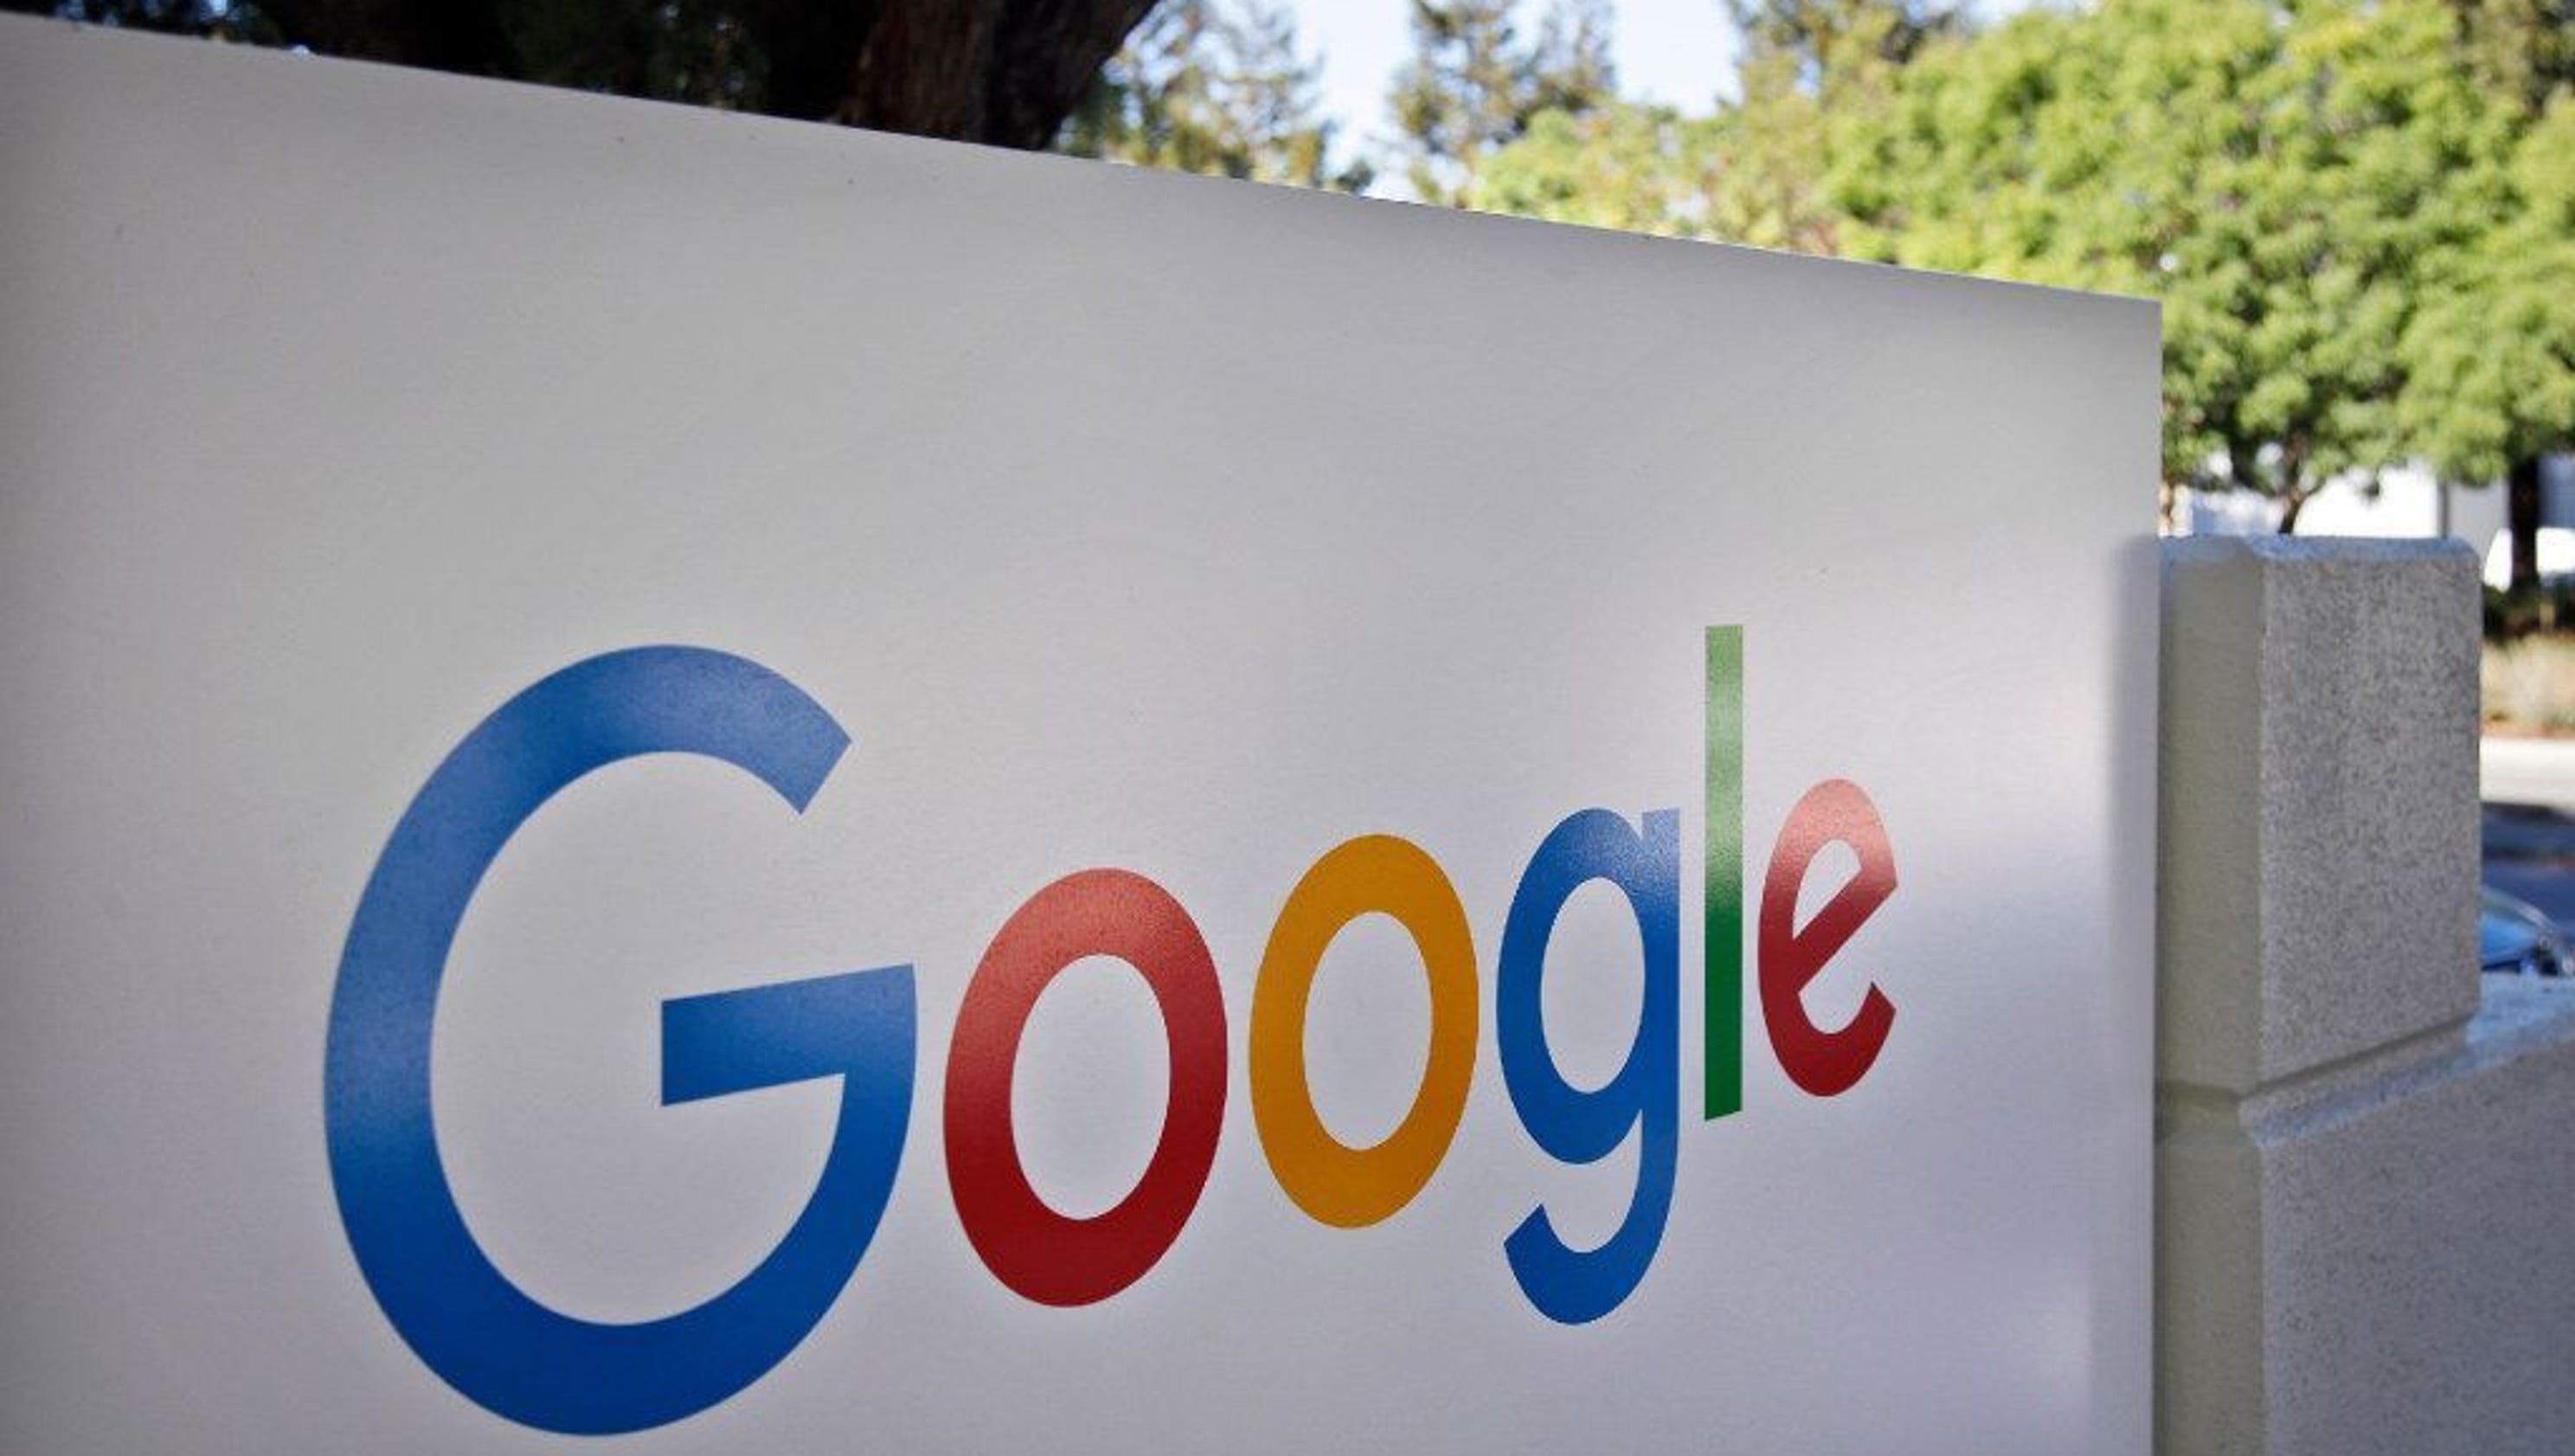 Google Docs warning: There's a phishing scam going around